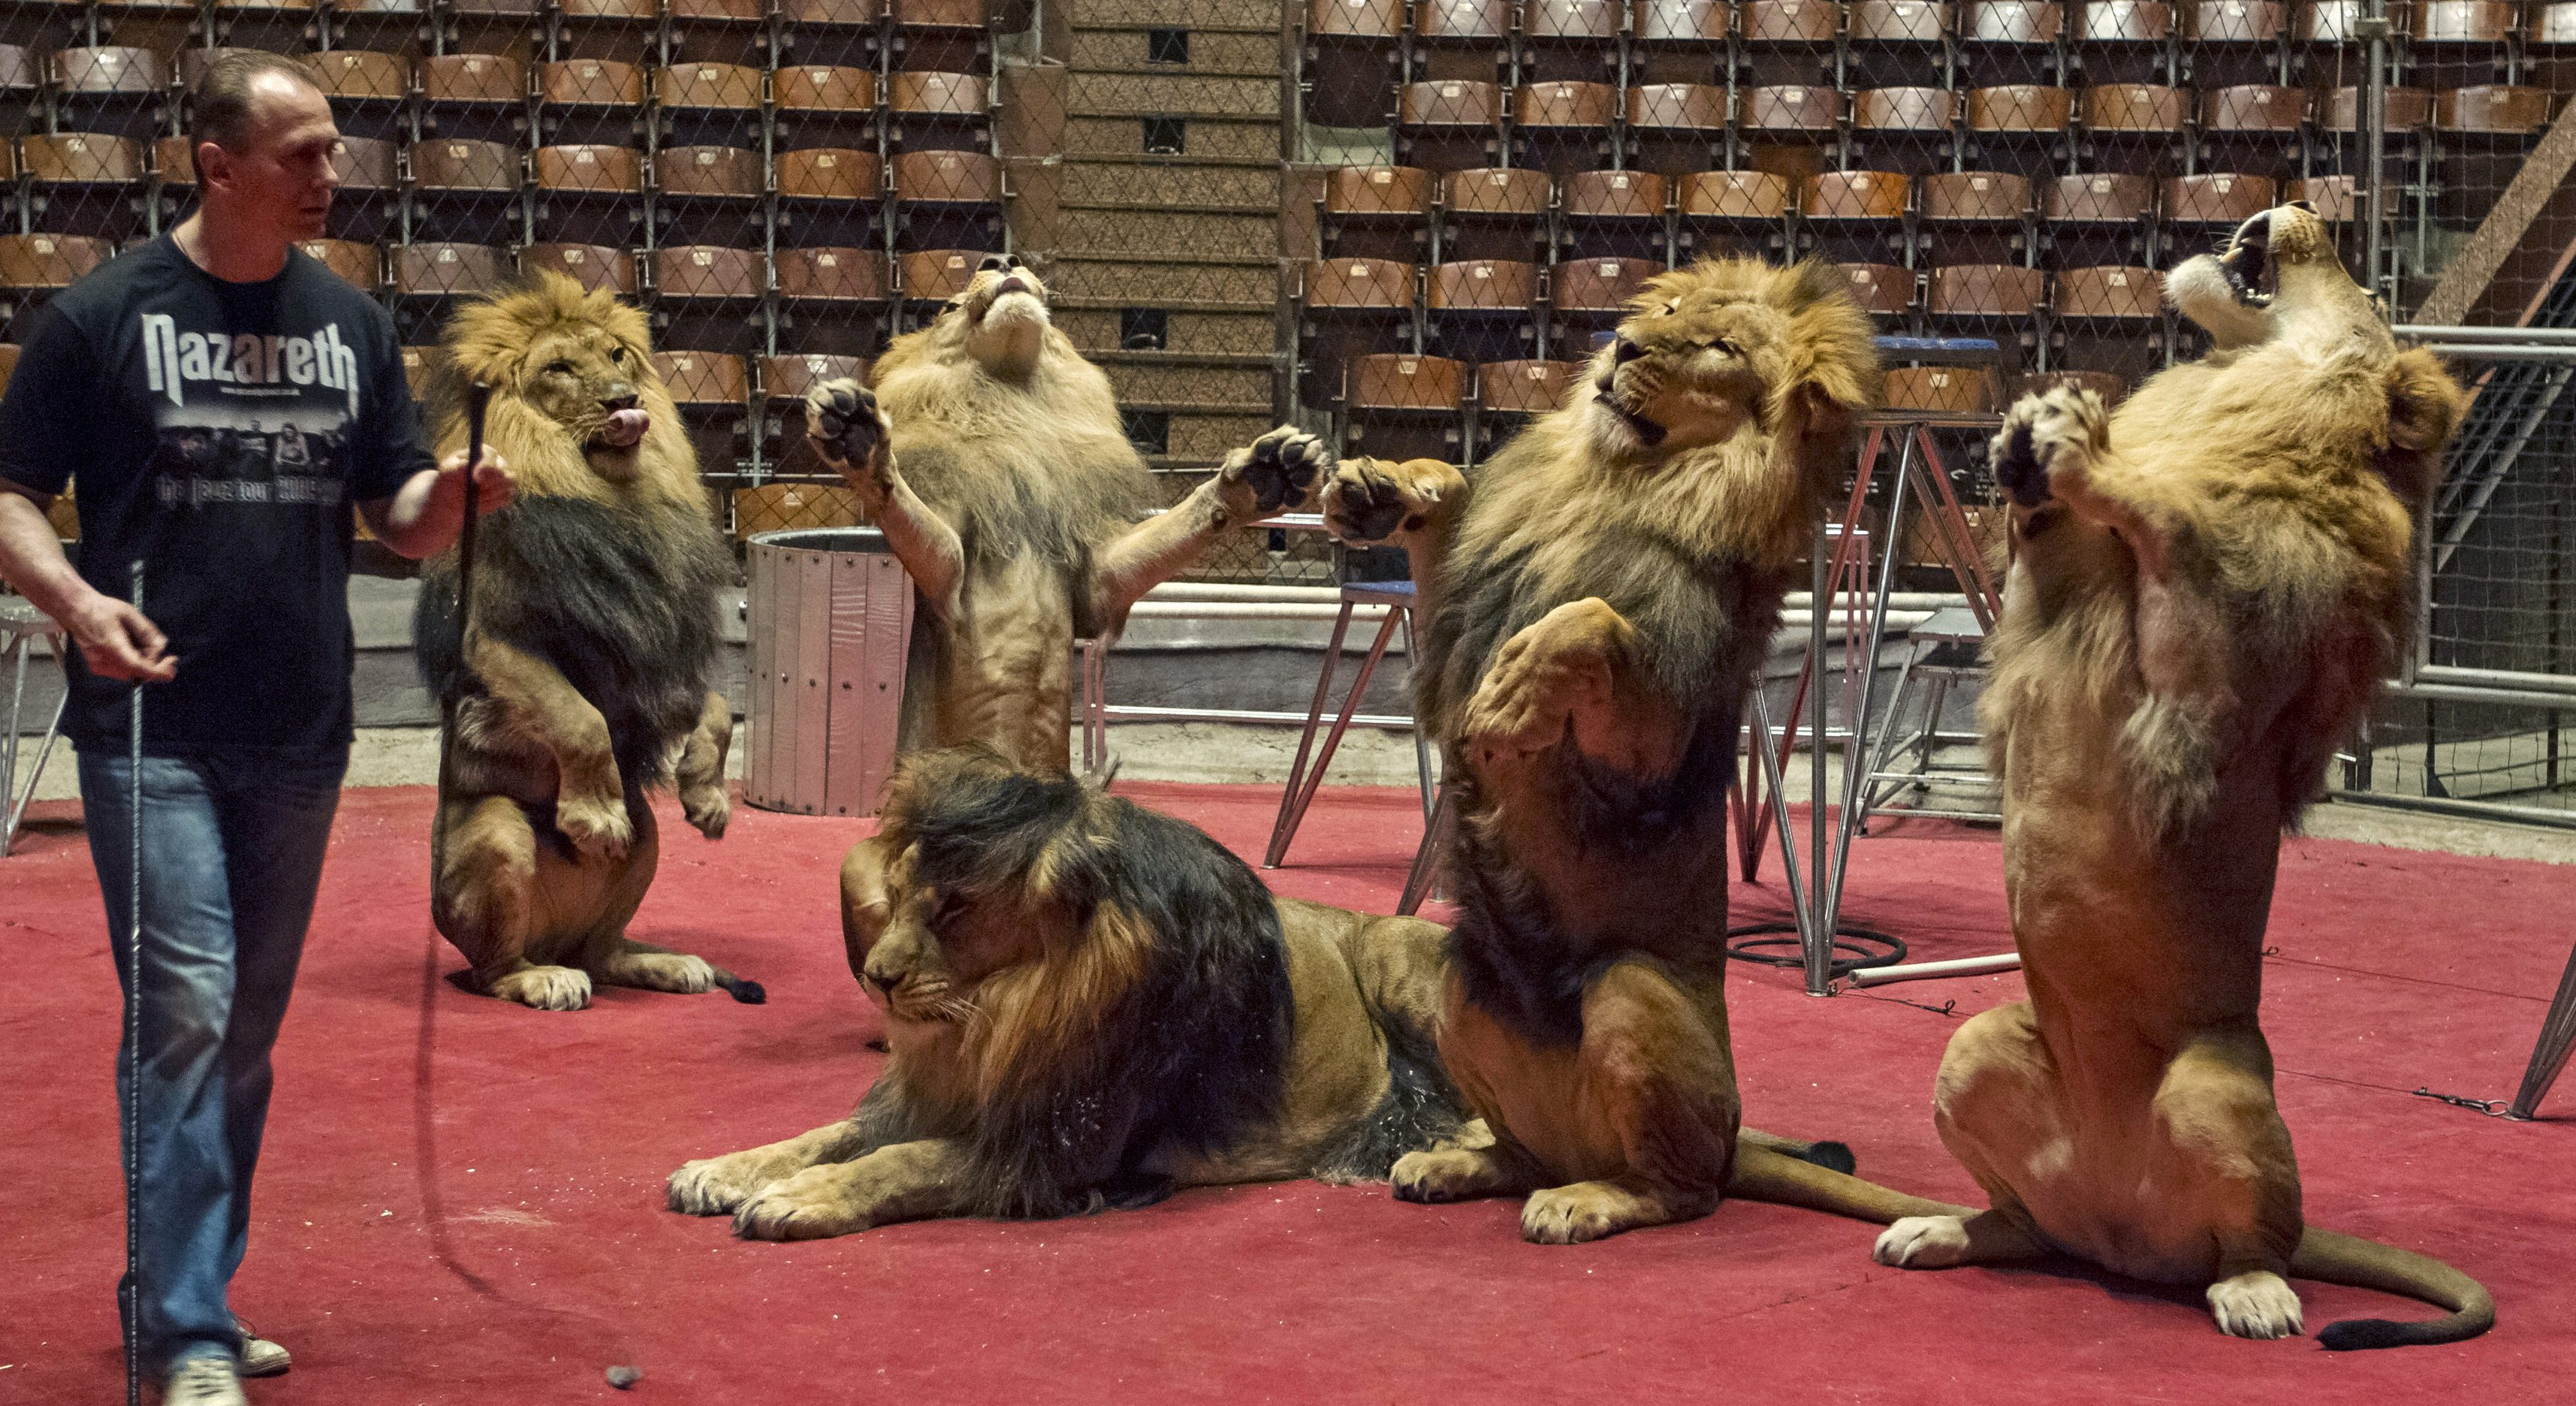 Lion tamer Oleksiy Pinko rehearses tricks with lions before their performance in a Kiev circus May 31, 2013. Pinko has trained seven lions for his performance in the circus where he dances with the lions and puts his head into a lion's open mouth. Picture taken May 31, 2013.